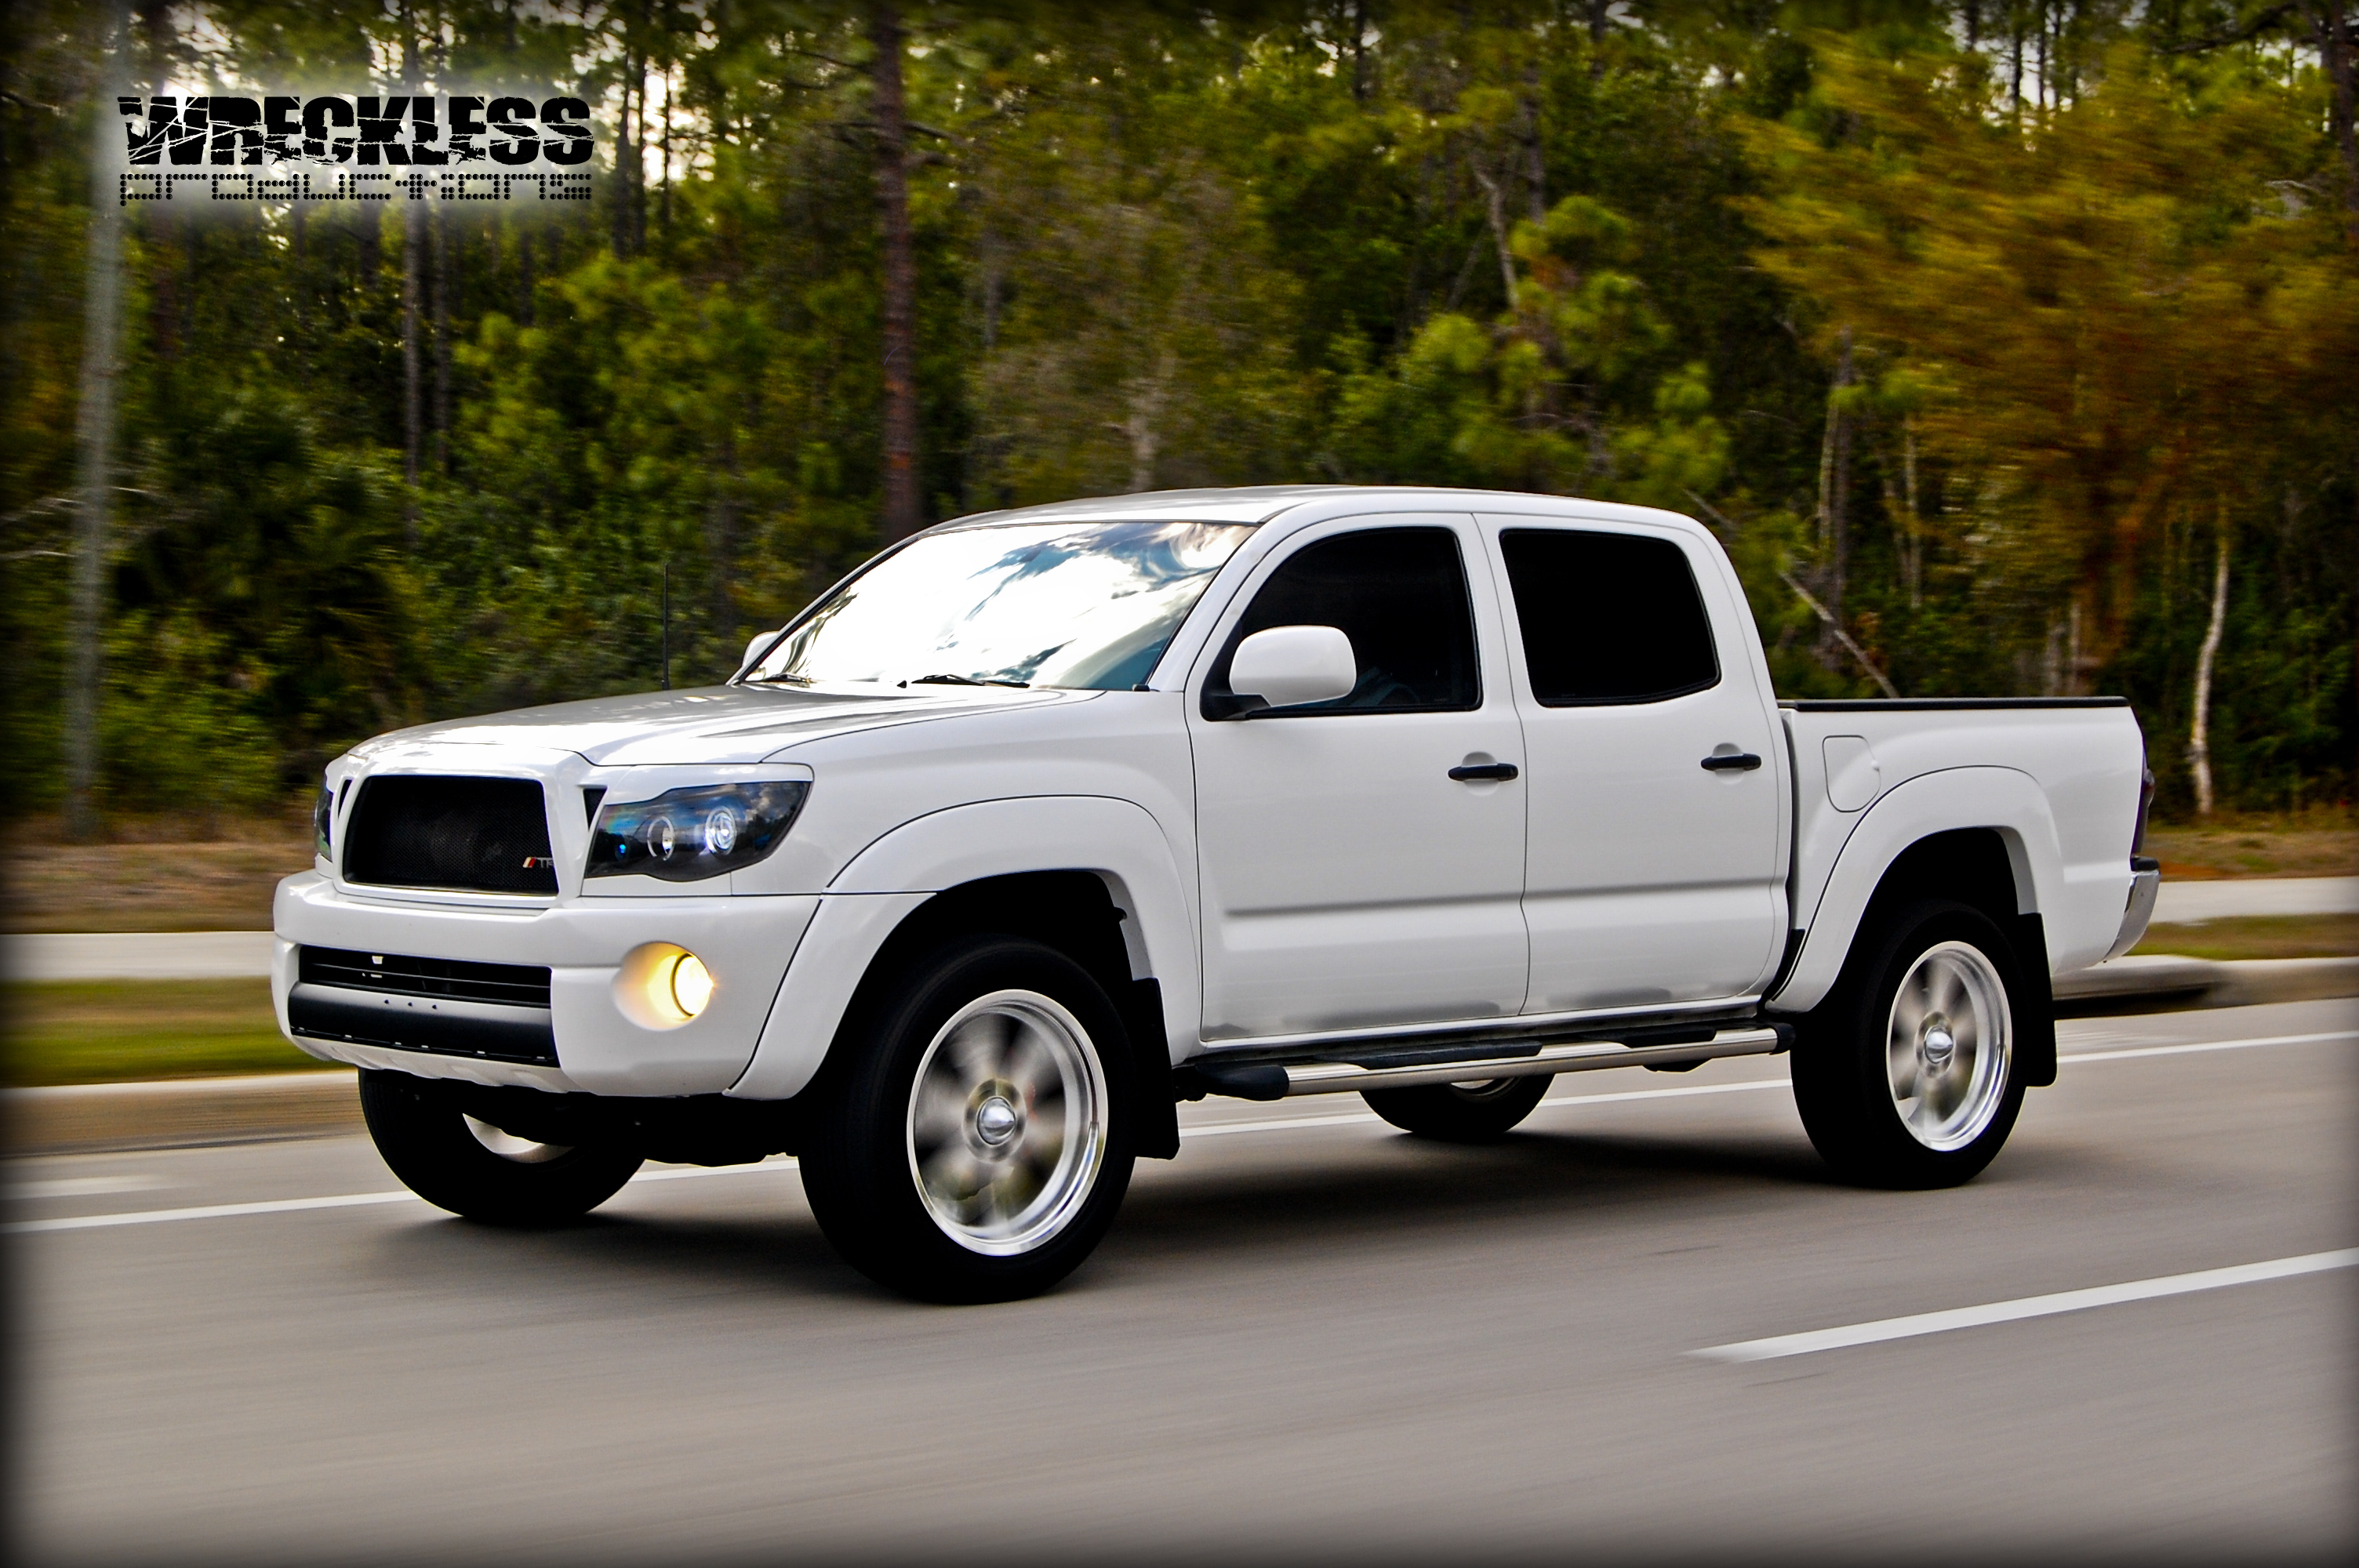 Toyota Tacoma Trucks For Sale In Jamaica West Indies Html